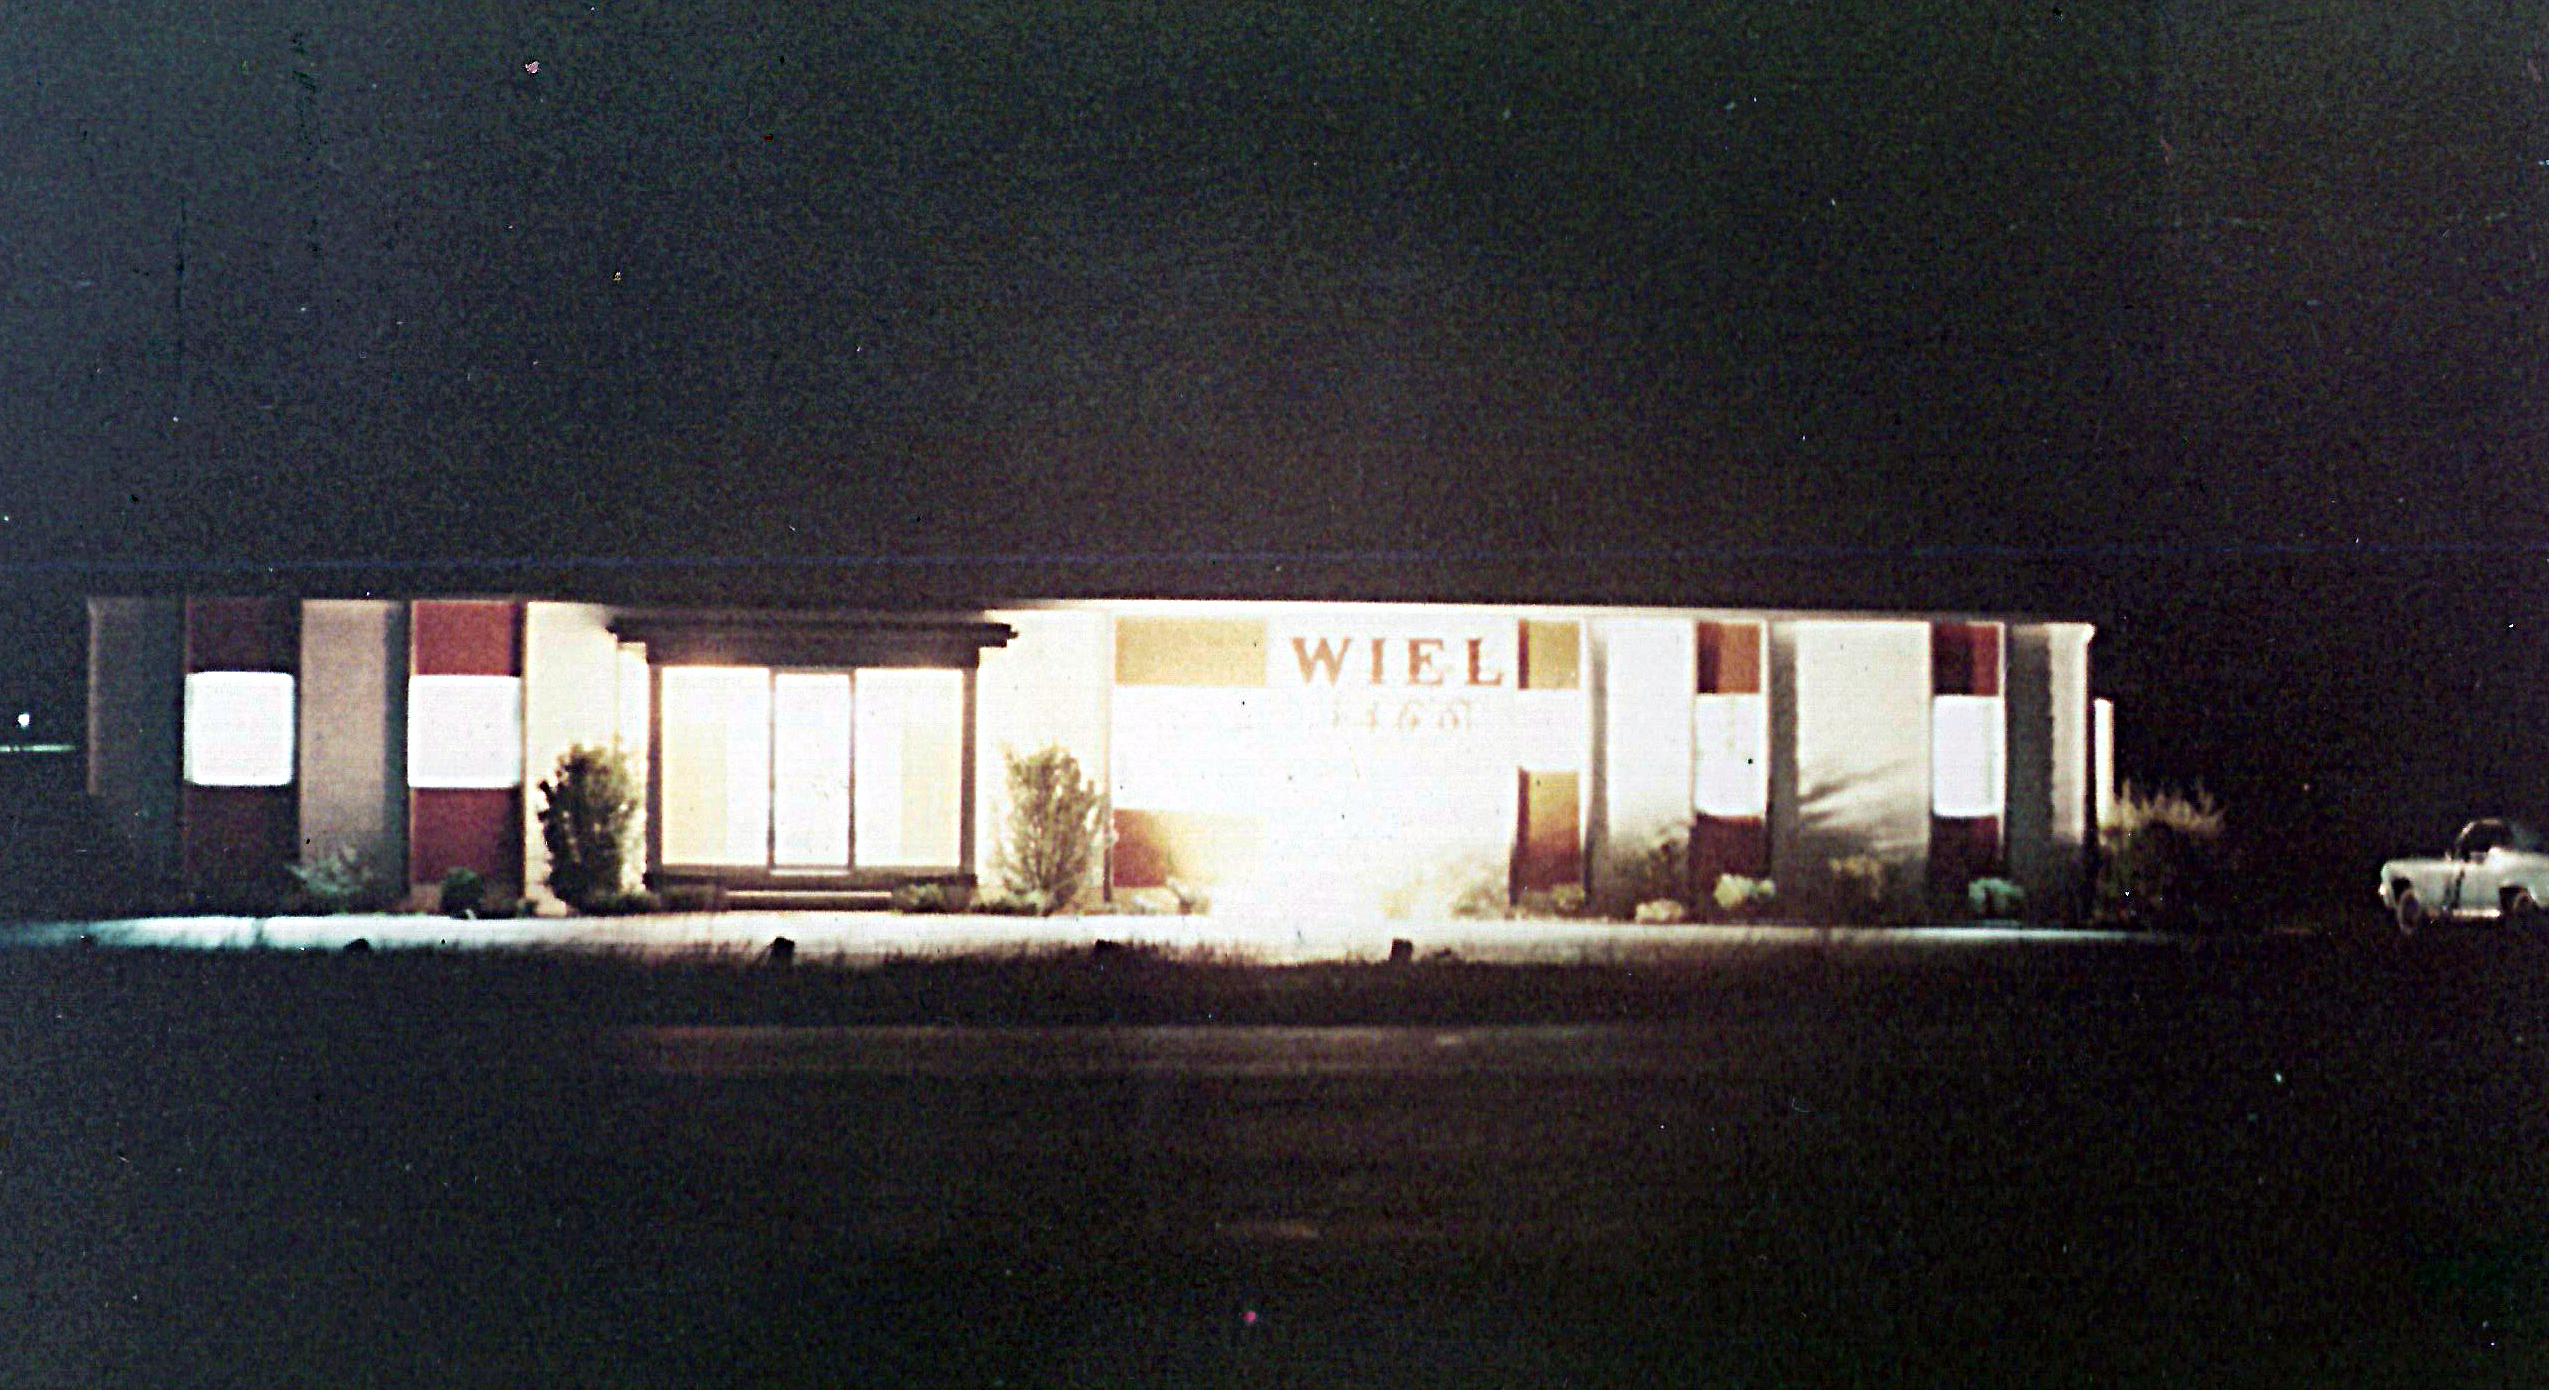 WIEL